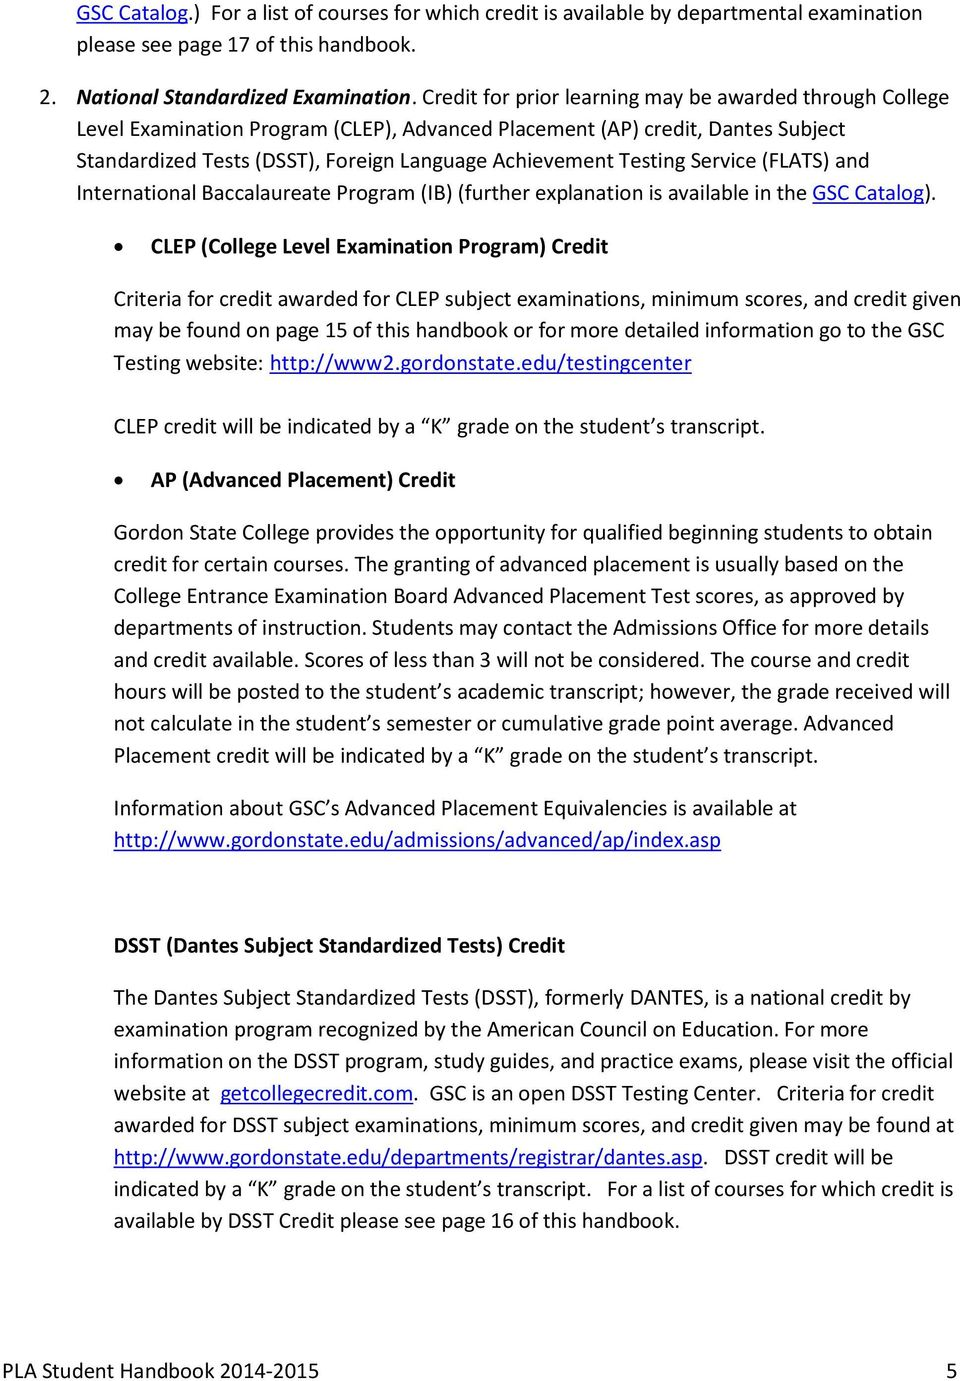 Testing Service (FLATS) and International Baccalaureate Program (IB) (further explanation is available in the GSC Catalog).